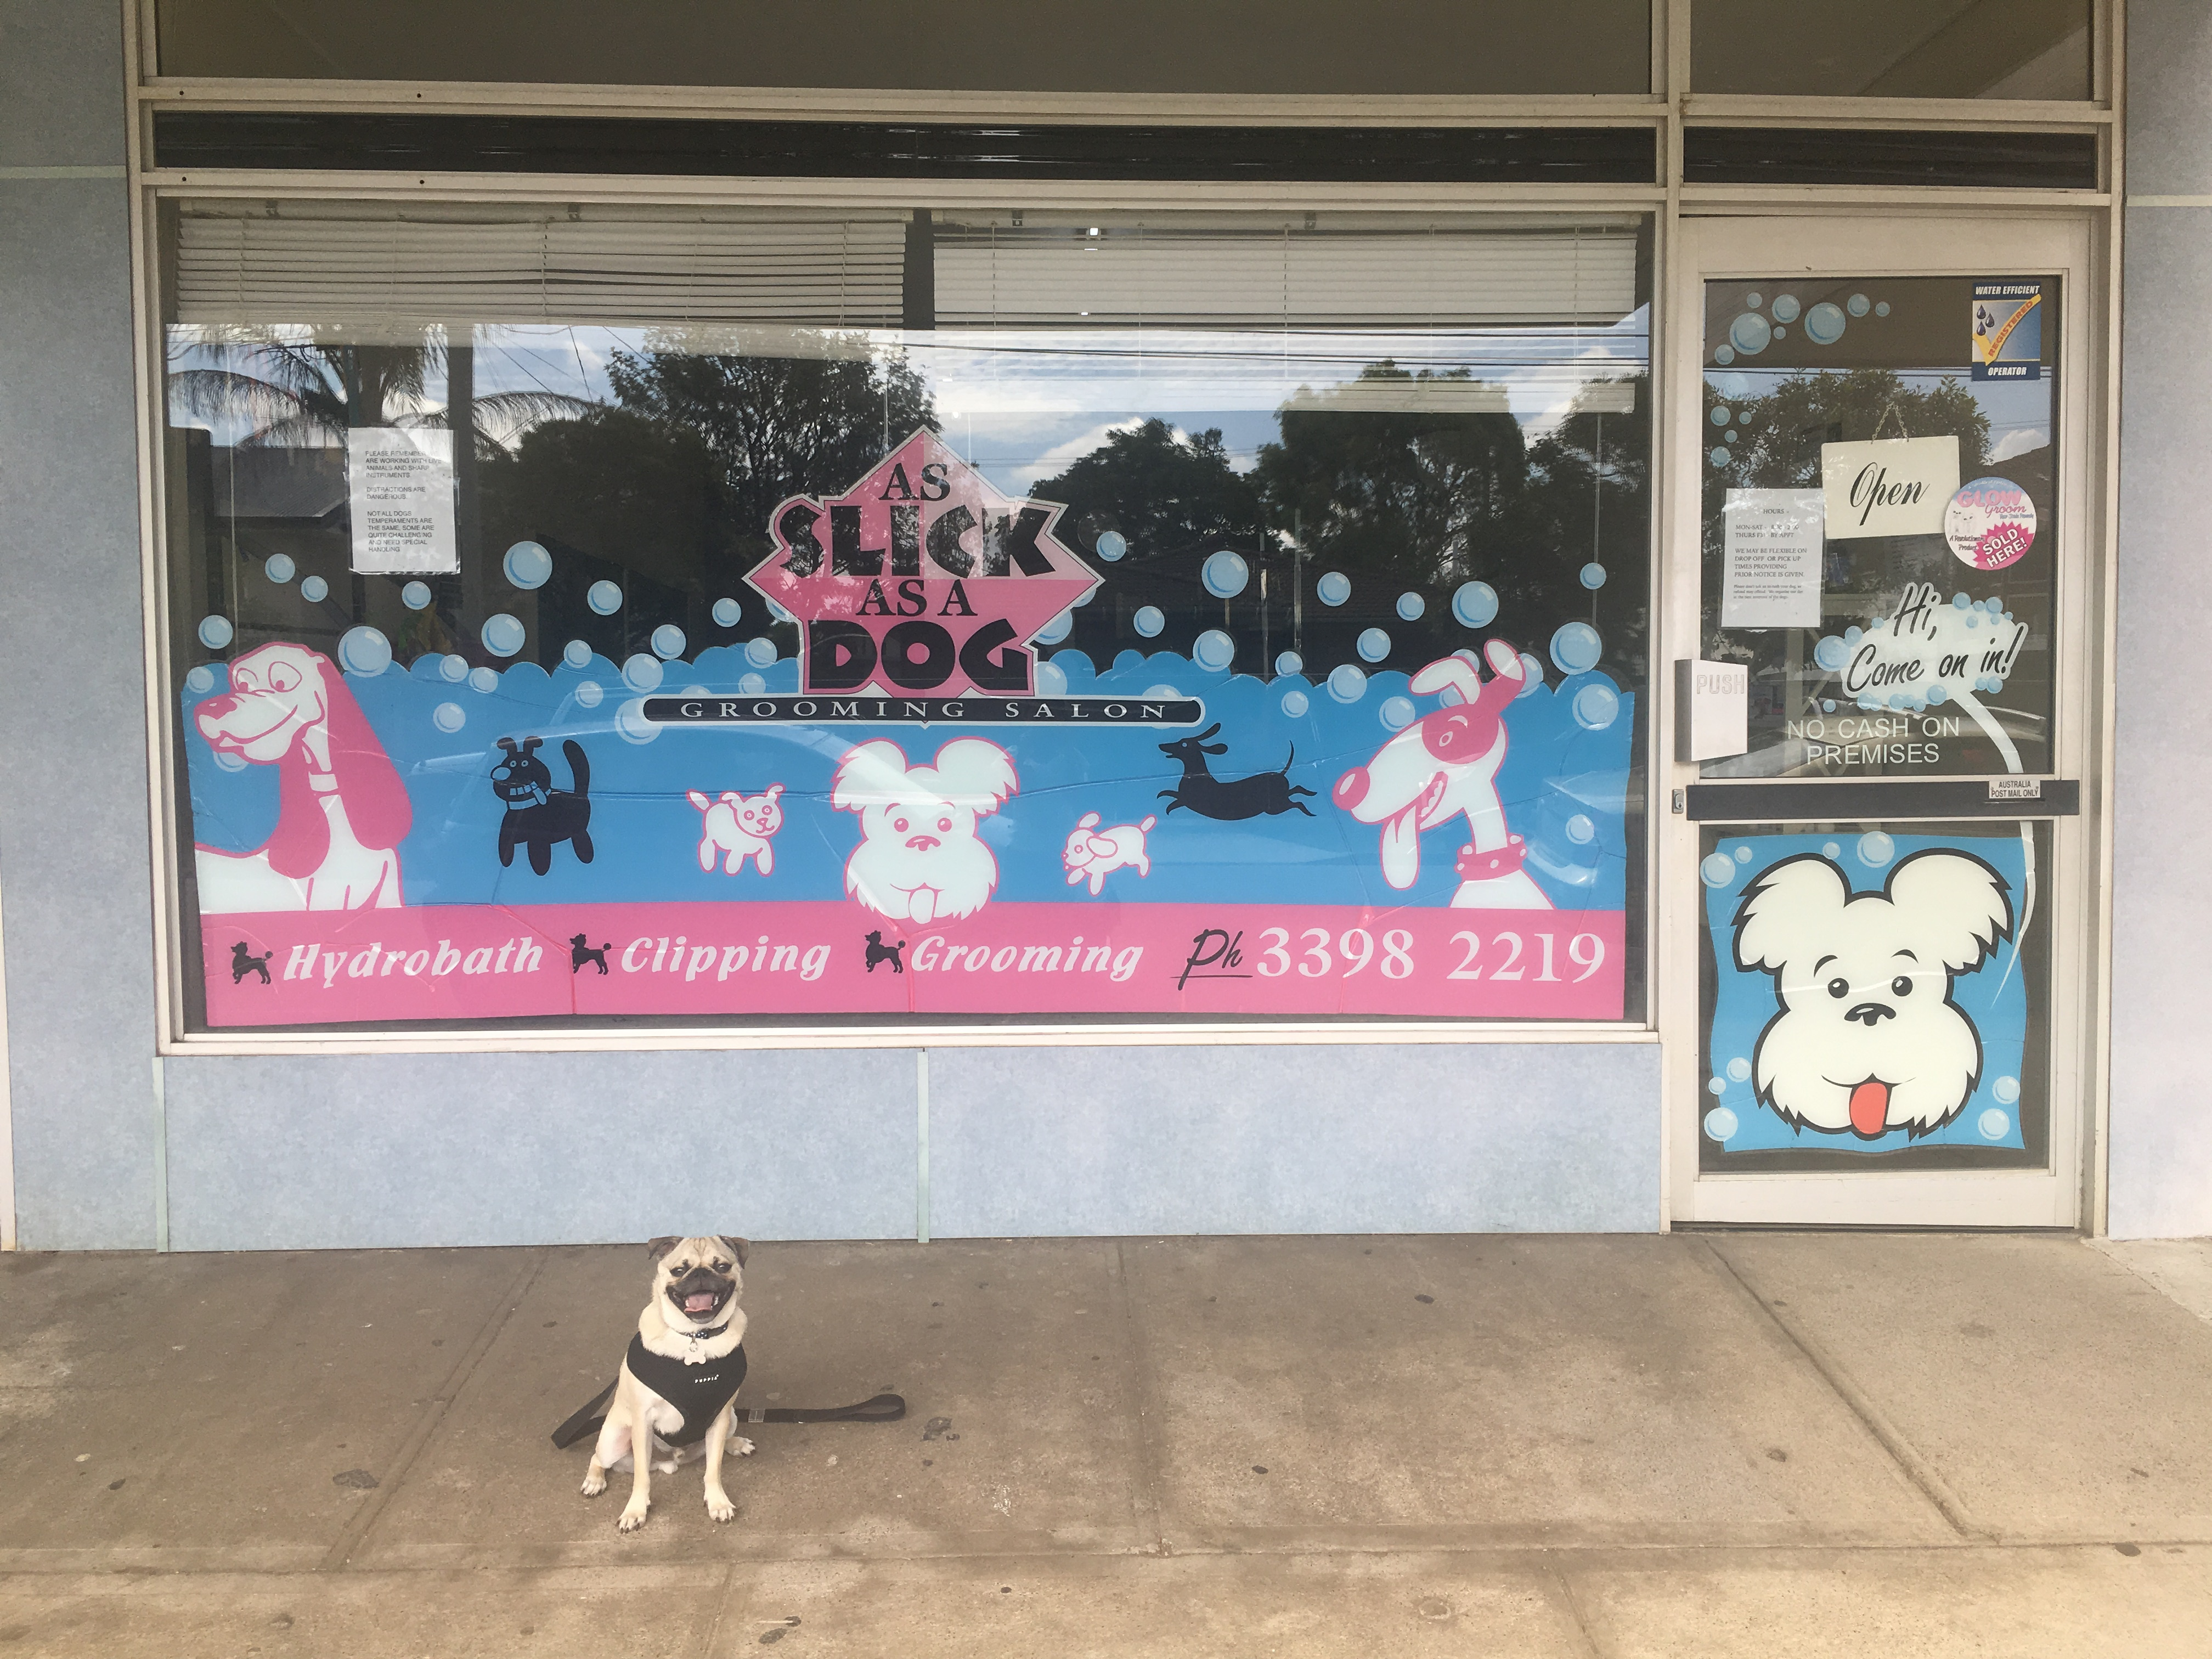 As slick as a dog grooming salon brisbane as slick as a dog grooming salon grooming salon dog grooming dog service solutioingenieria Gallery